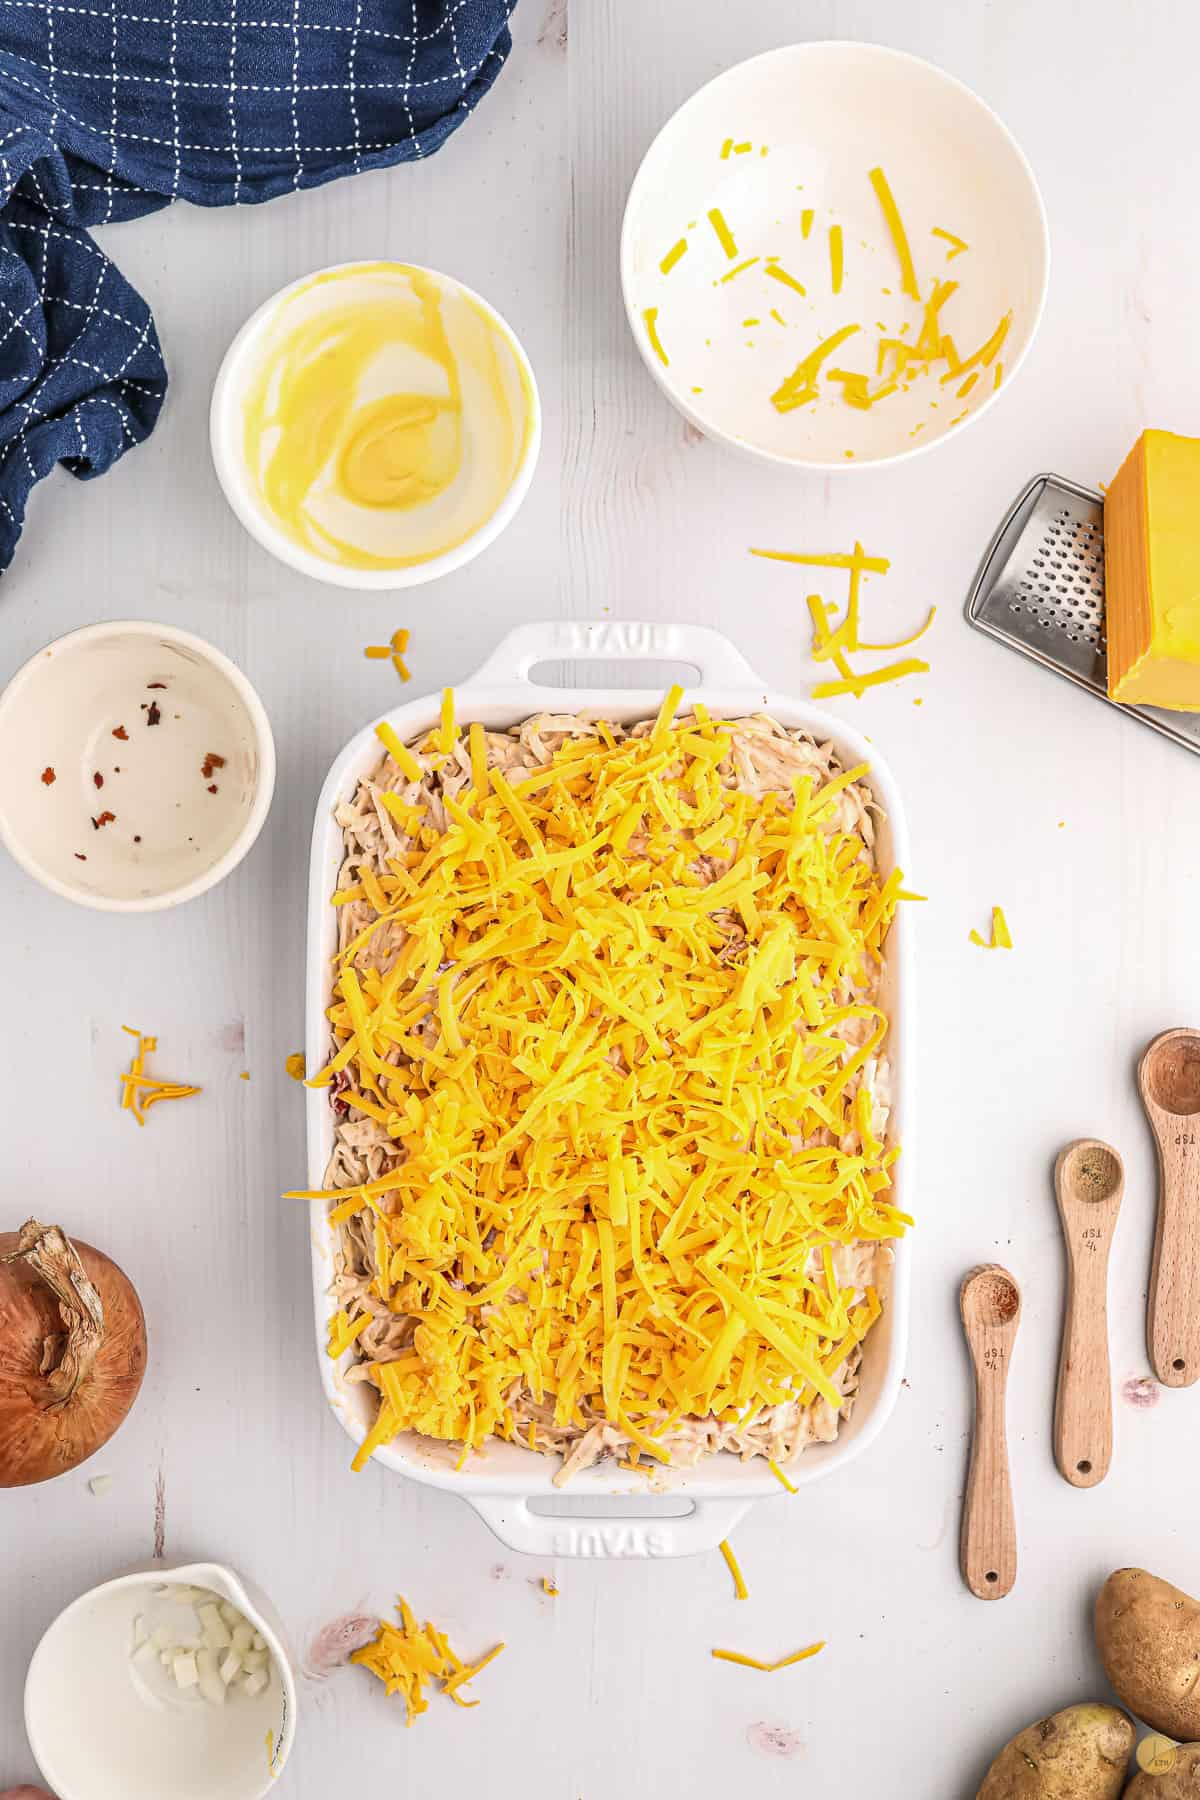 cheese in a baking dish